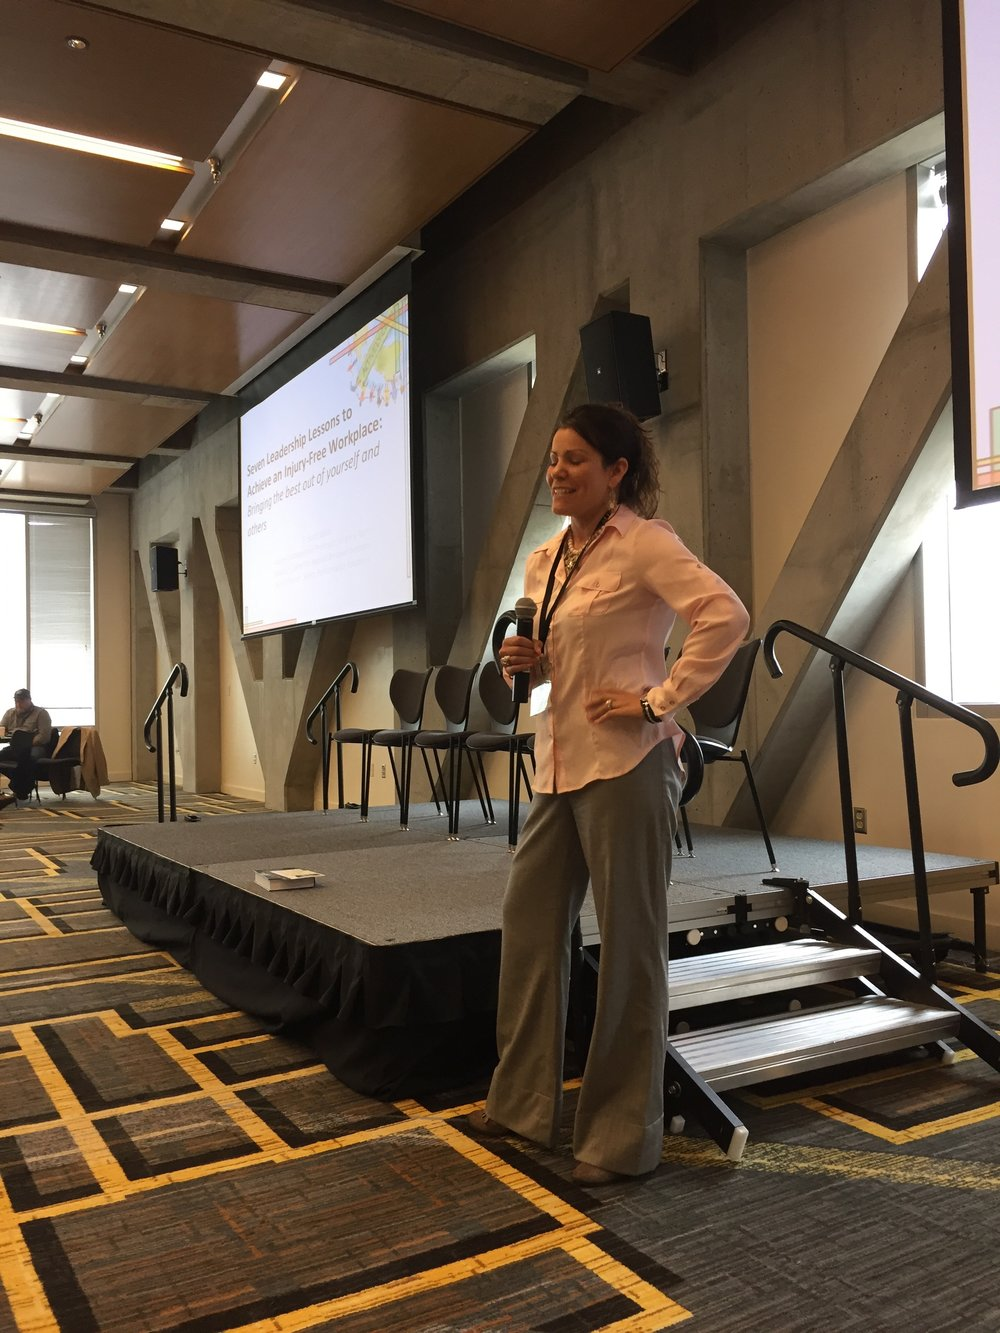 Krista Geller (Bechtel Corporation) conducting a break-out session.